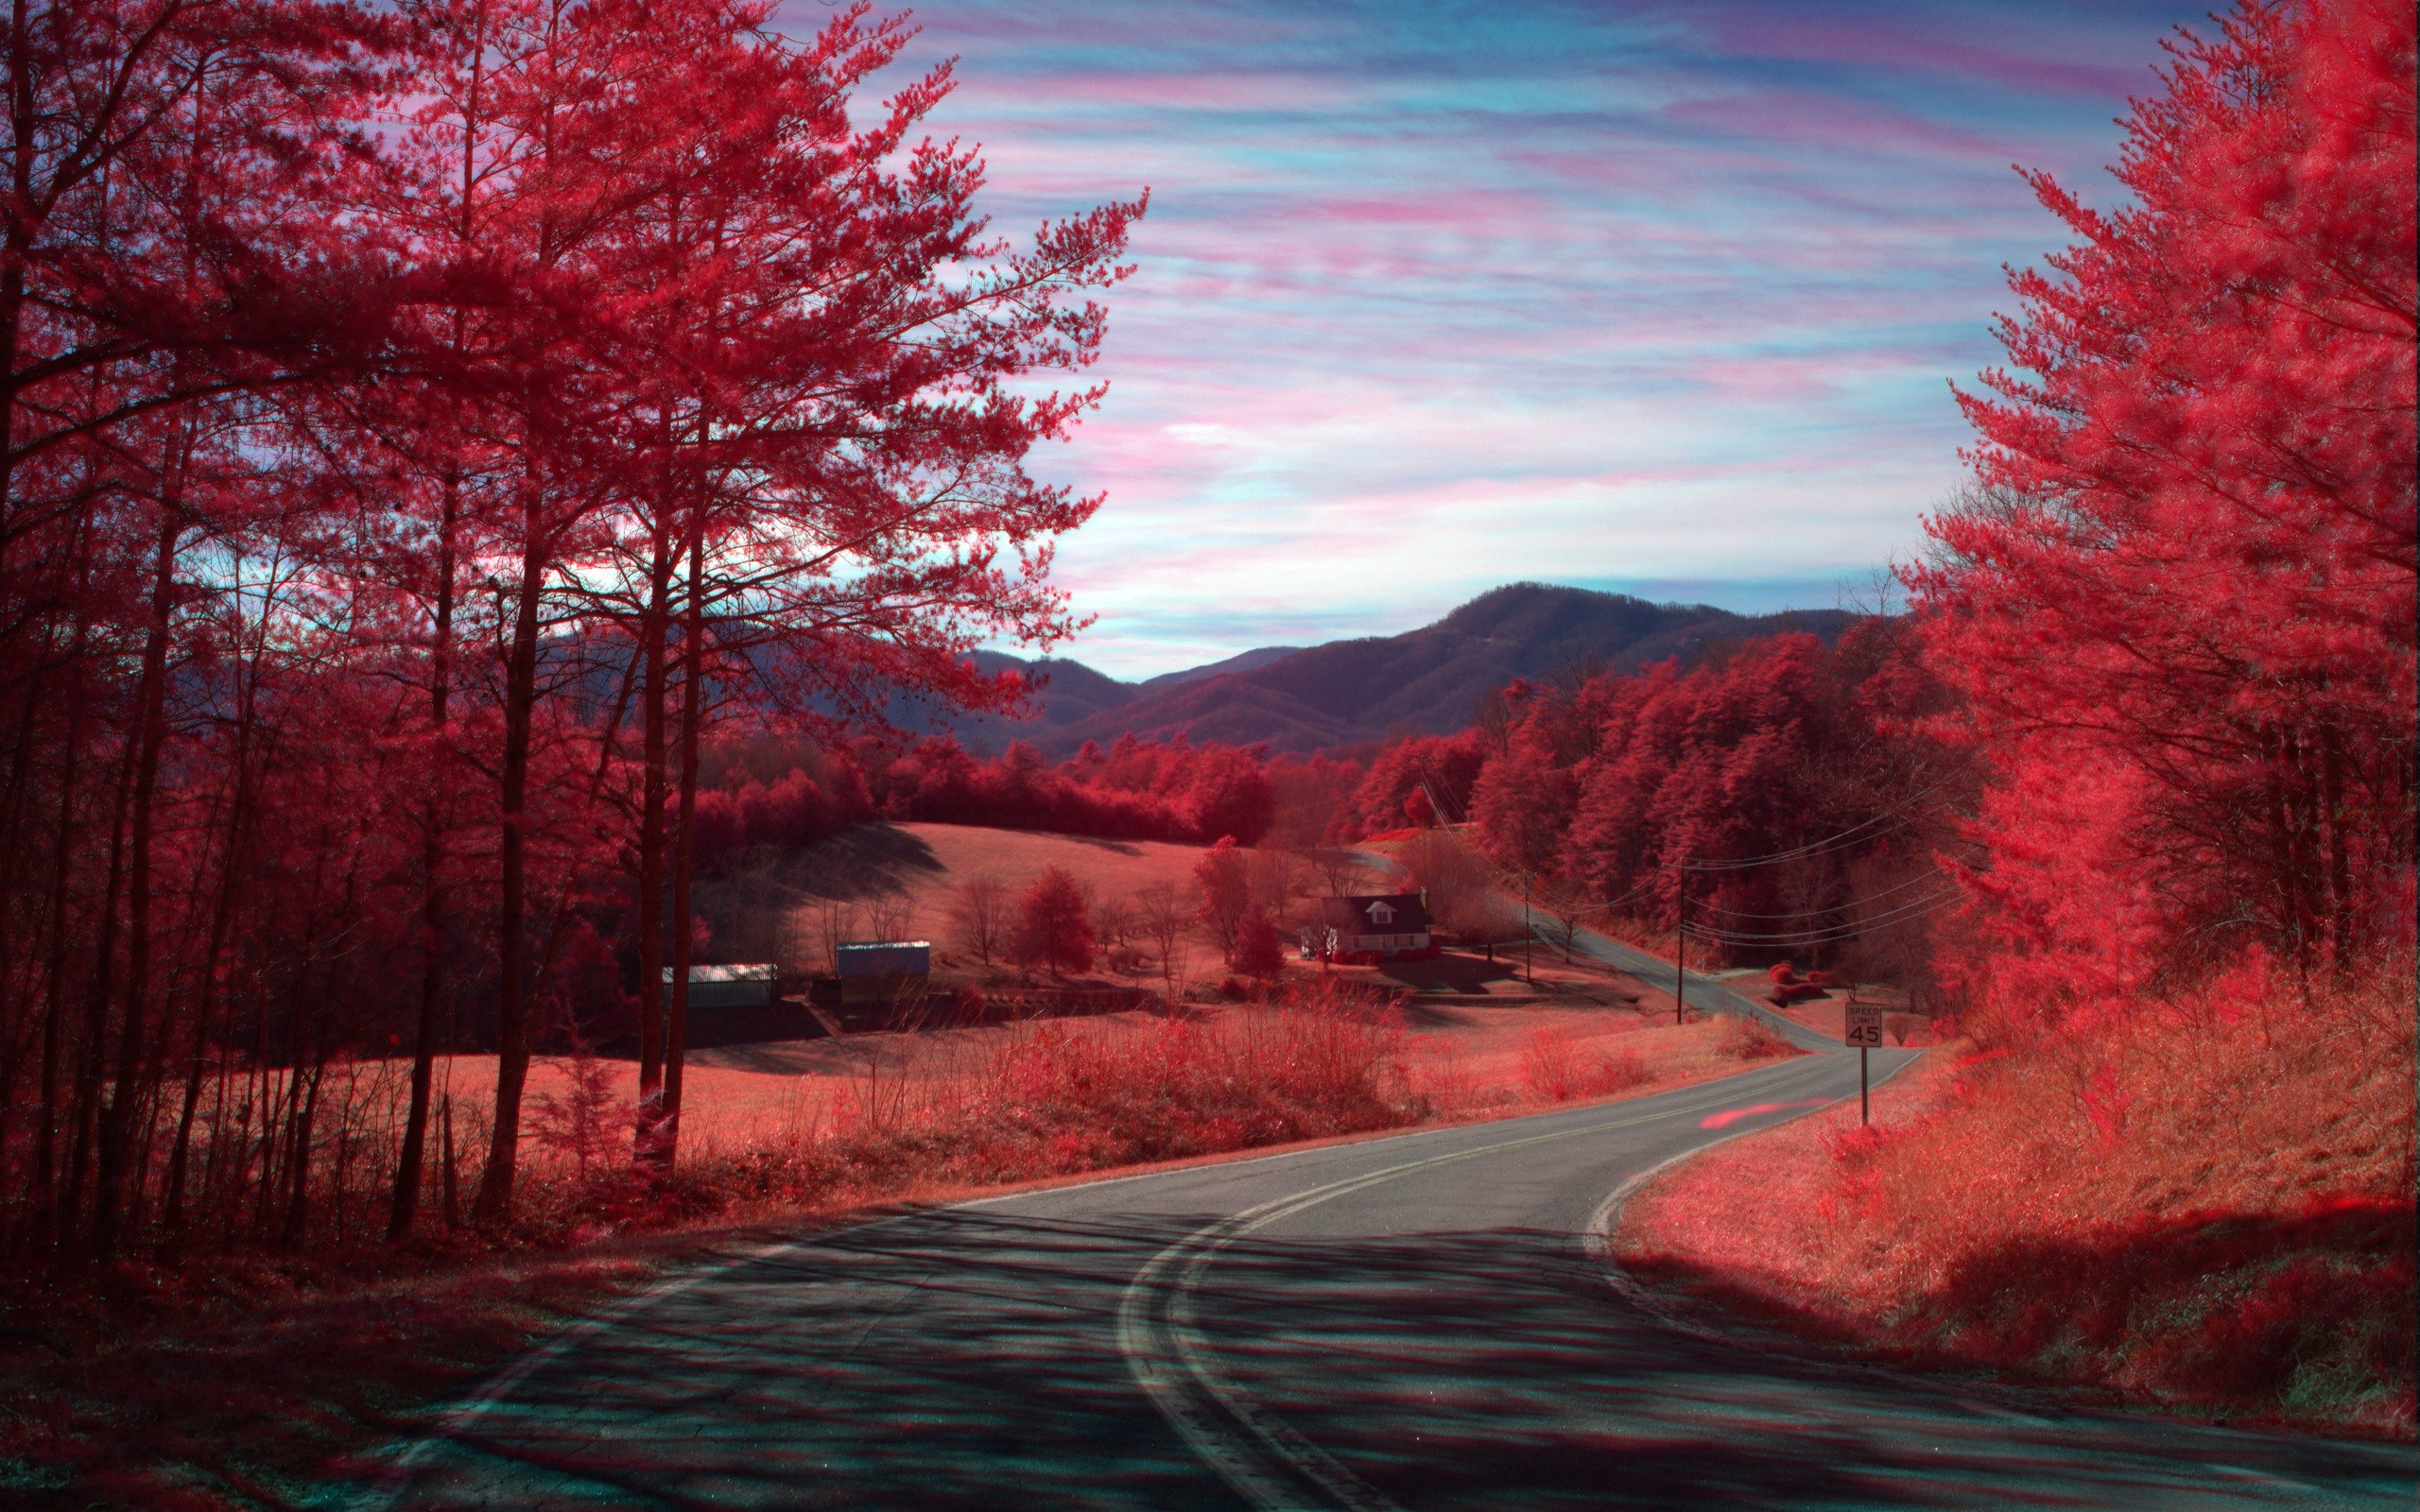 Red Nature Wallpaper Red nature road wallpaper